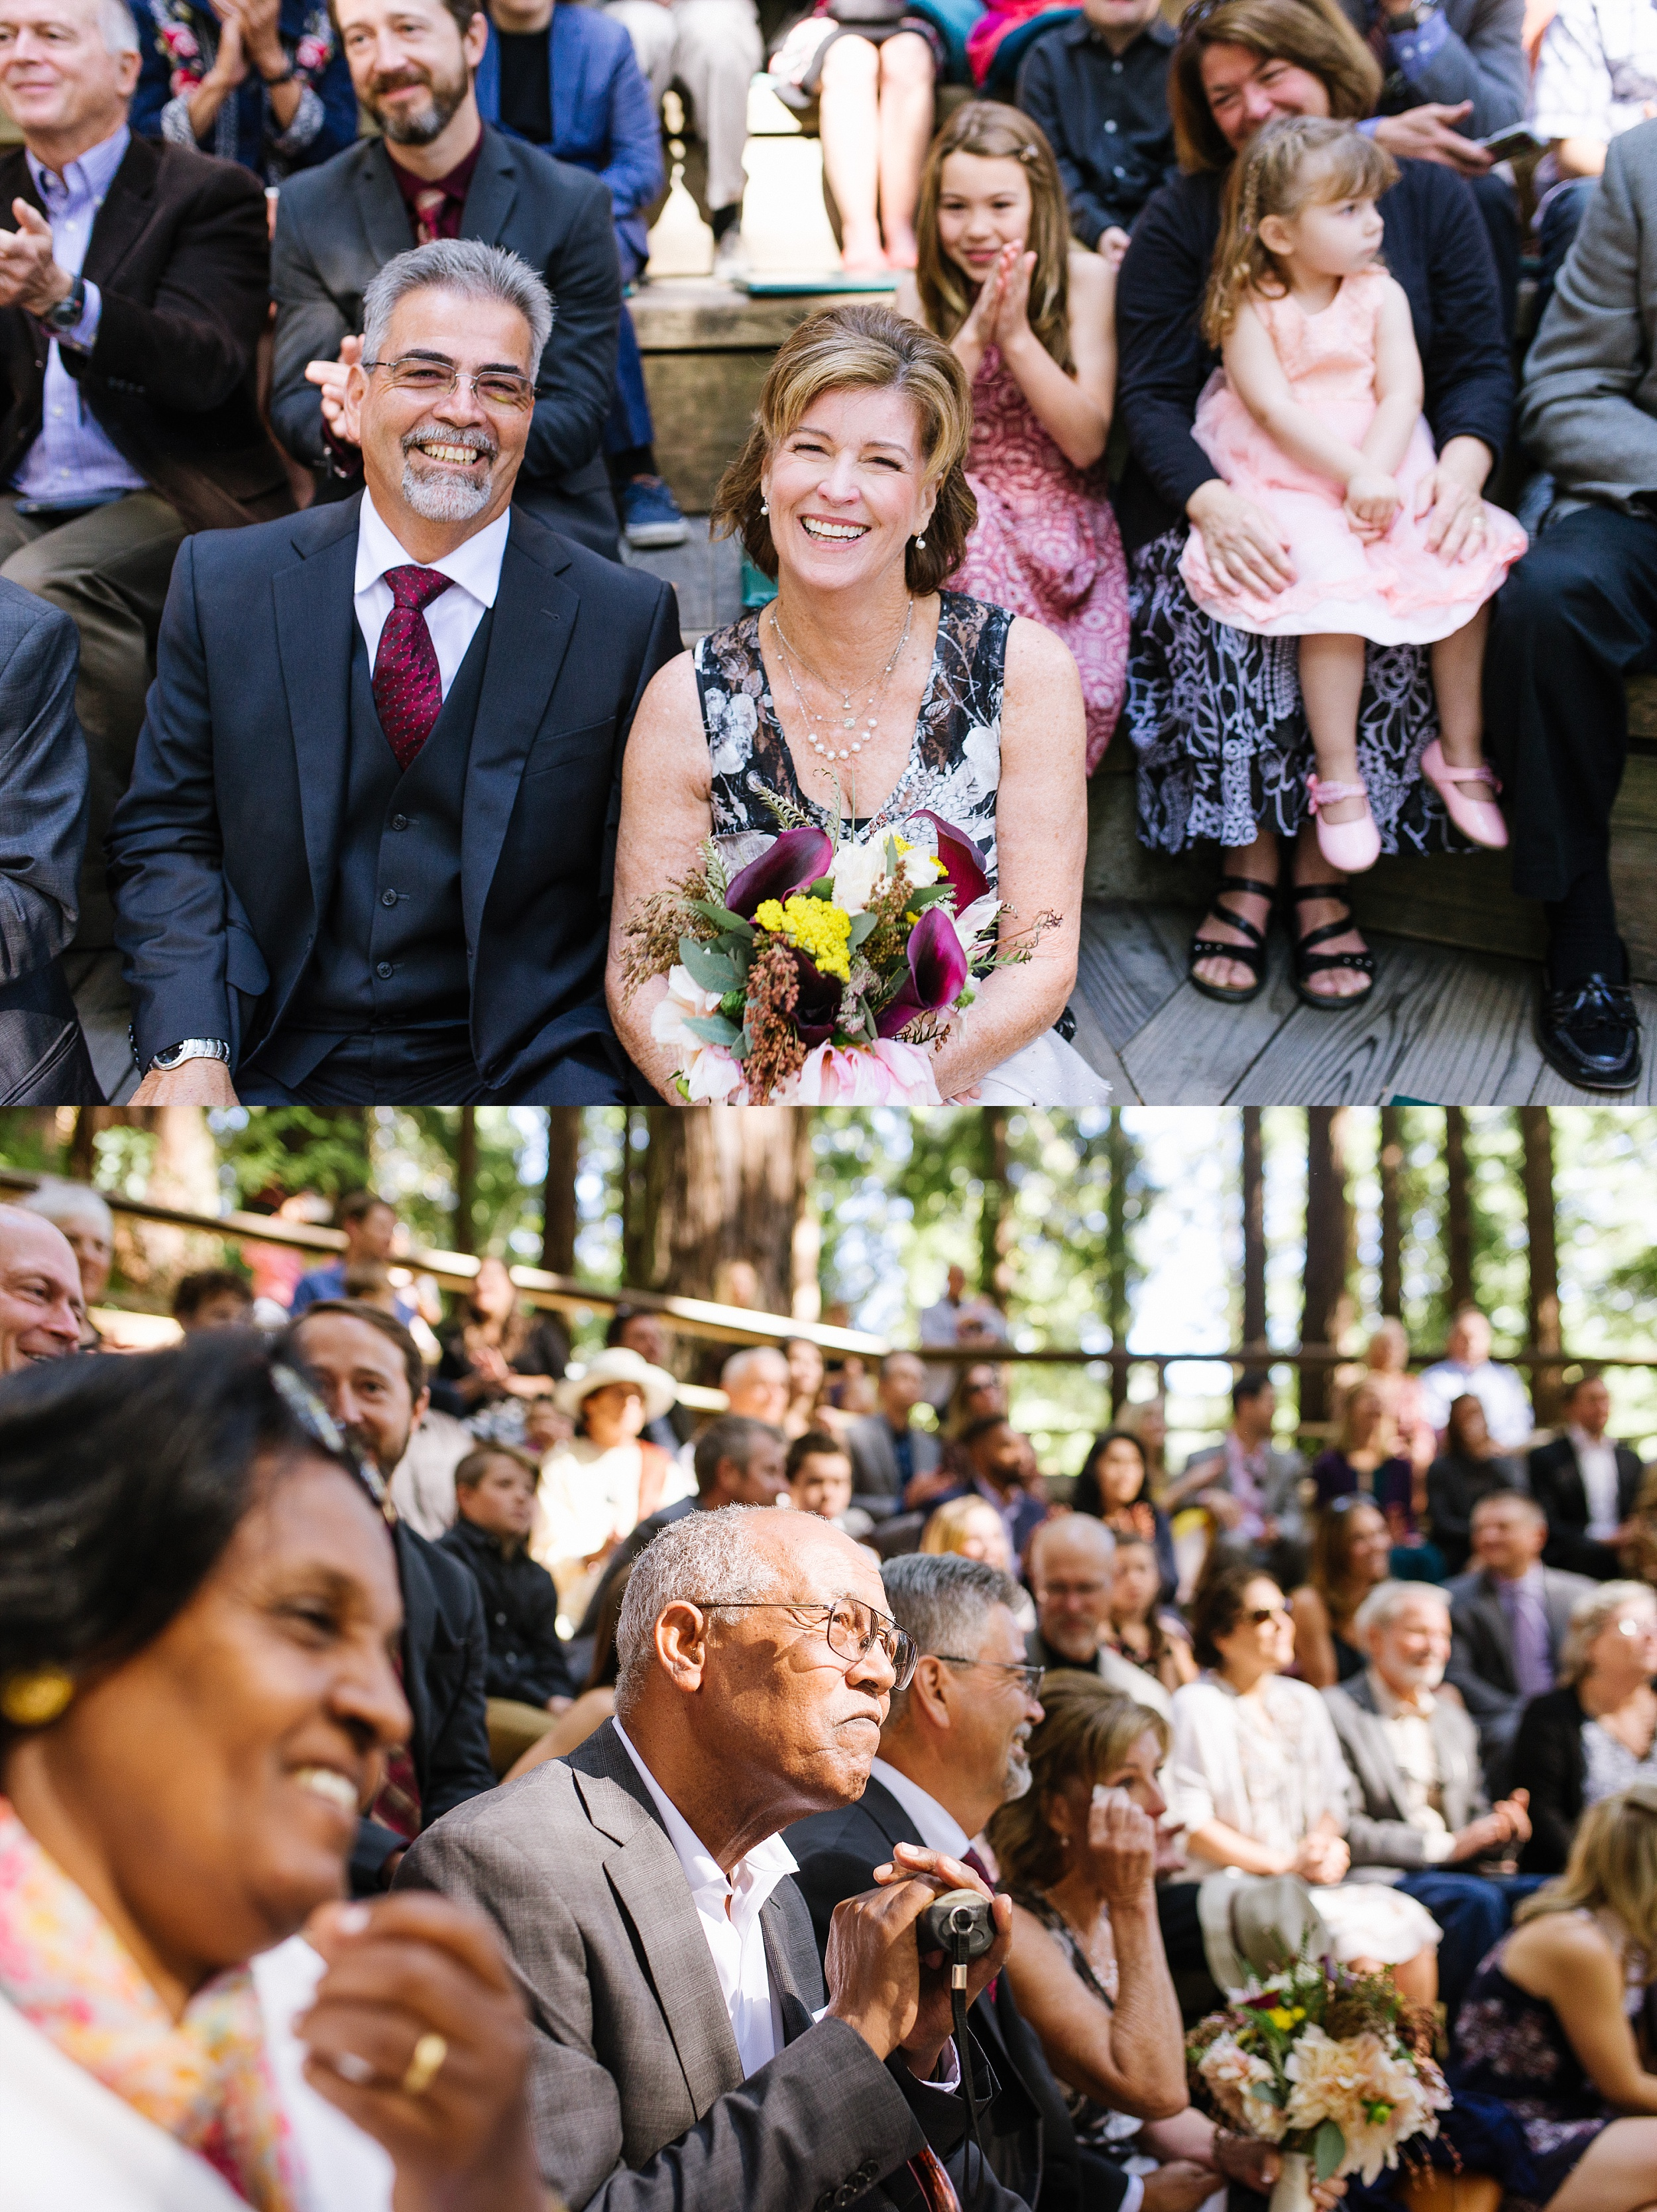 ucberkeley_botanical_redwoods_outdoor_wedding_jennyrez_cdp_0015.jpg